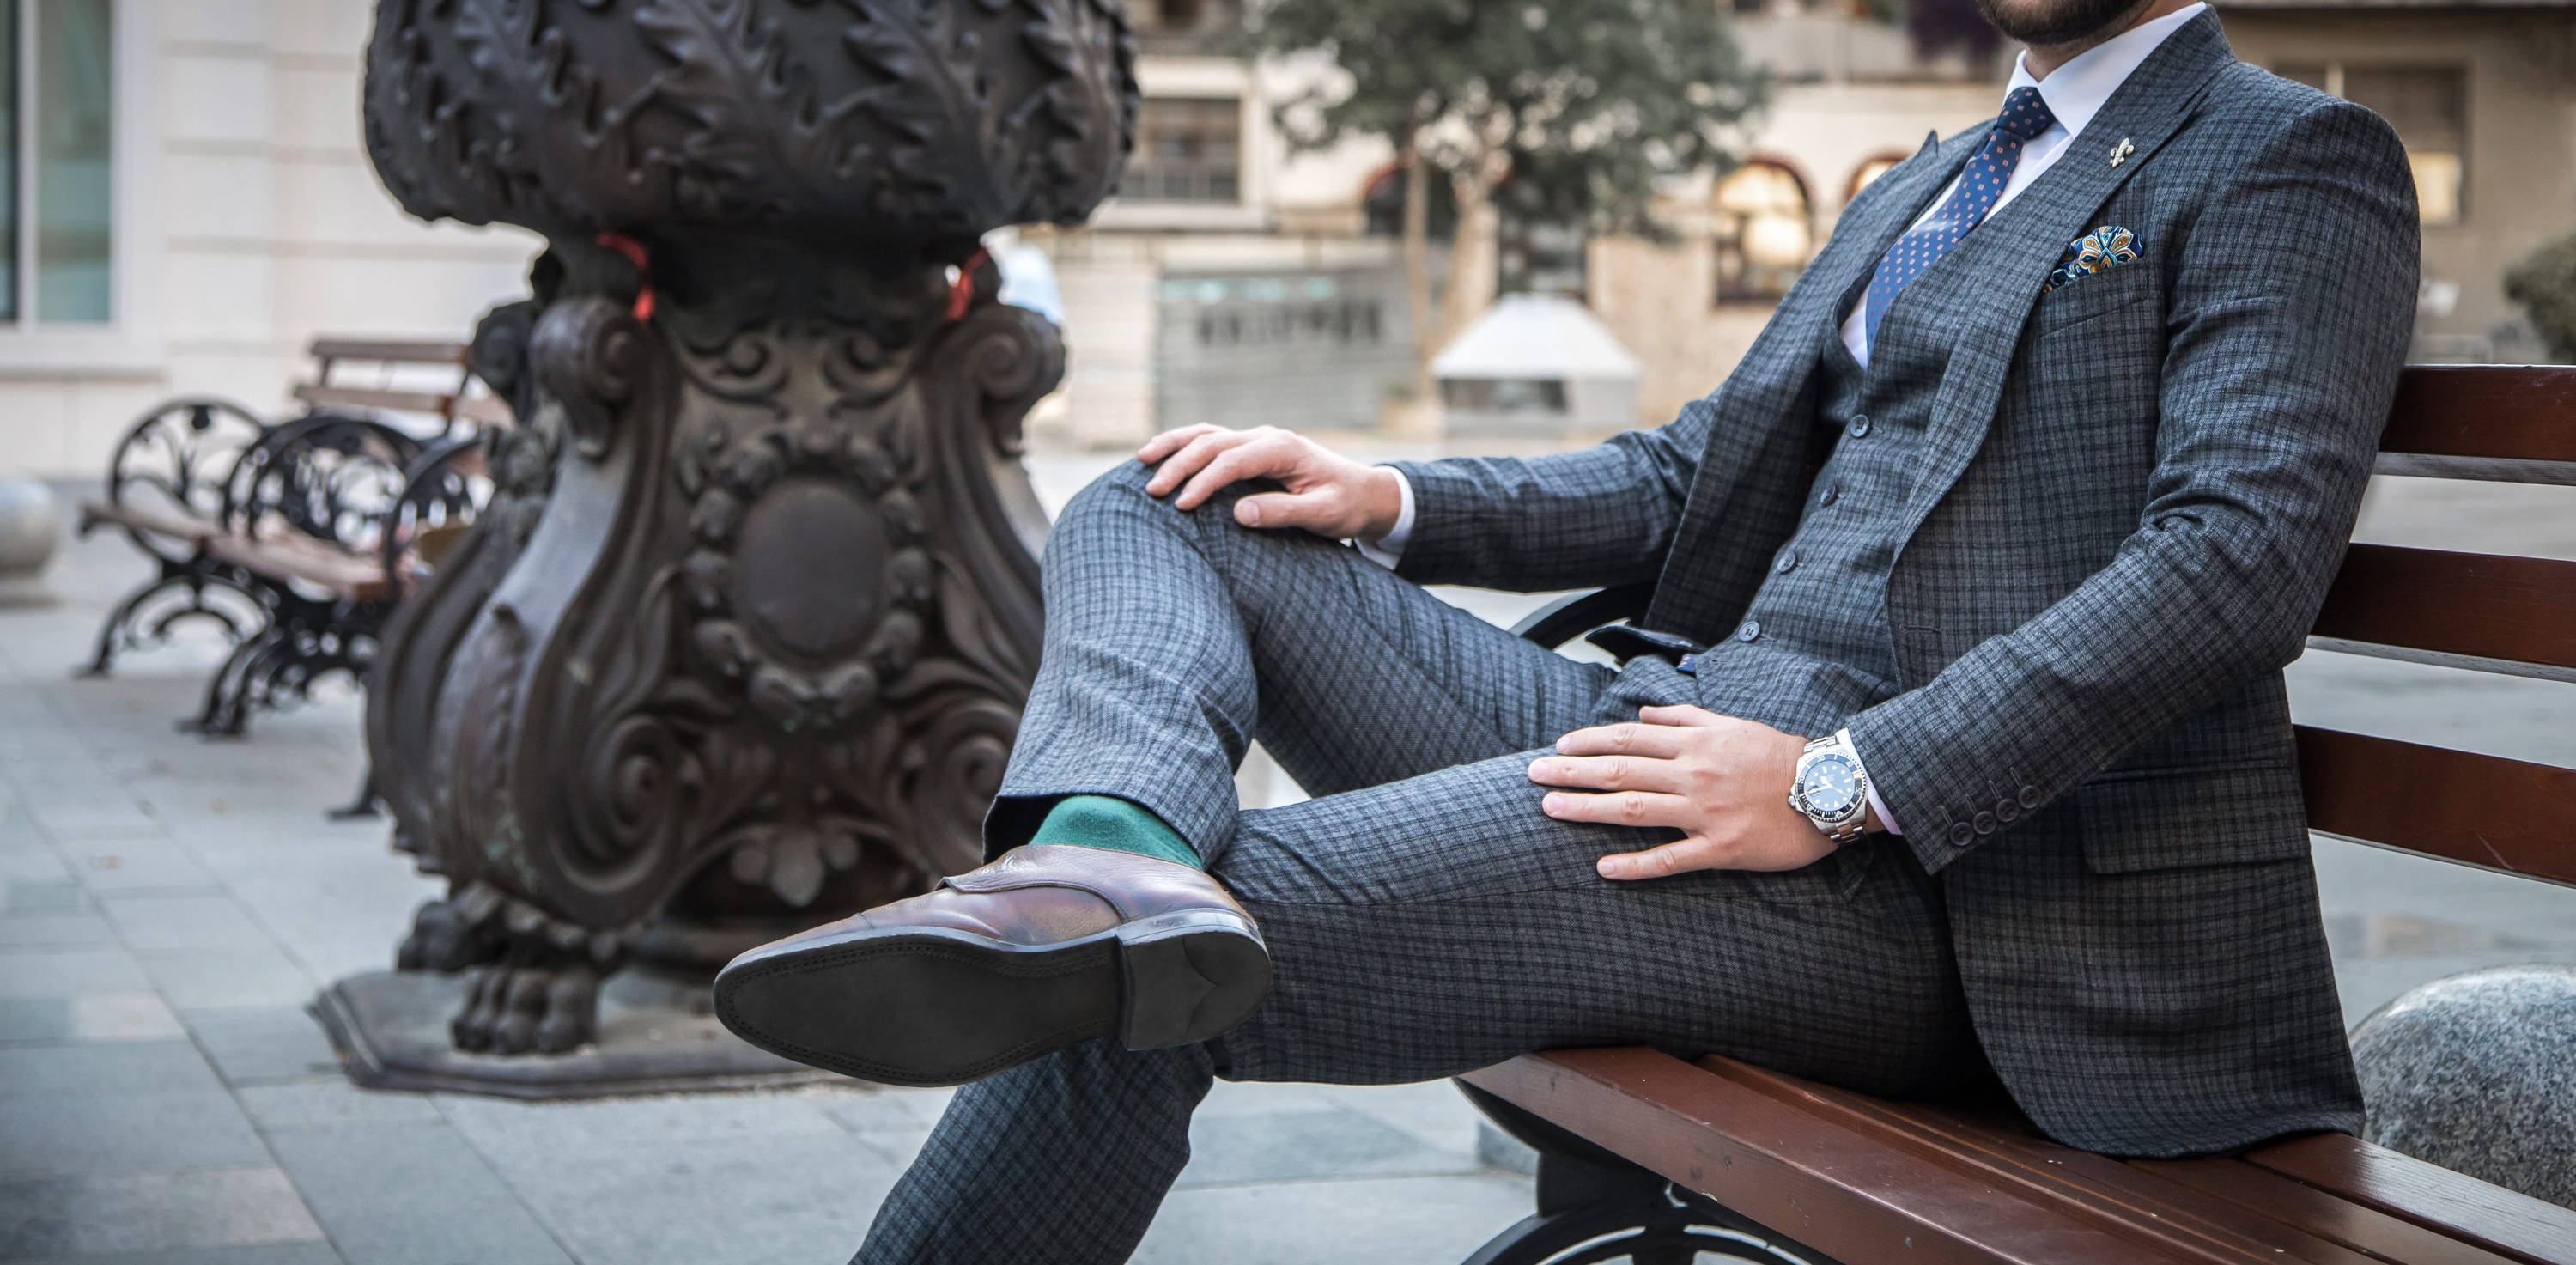 Dapper gentleman sits on a bench in a grey checked suit with luxury watch, tie and pocket square